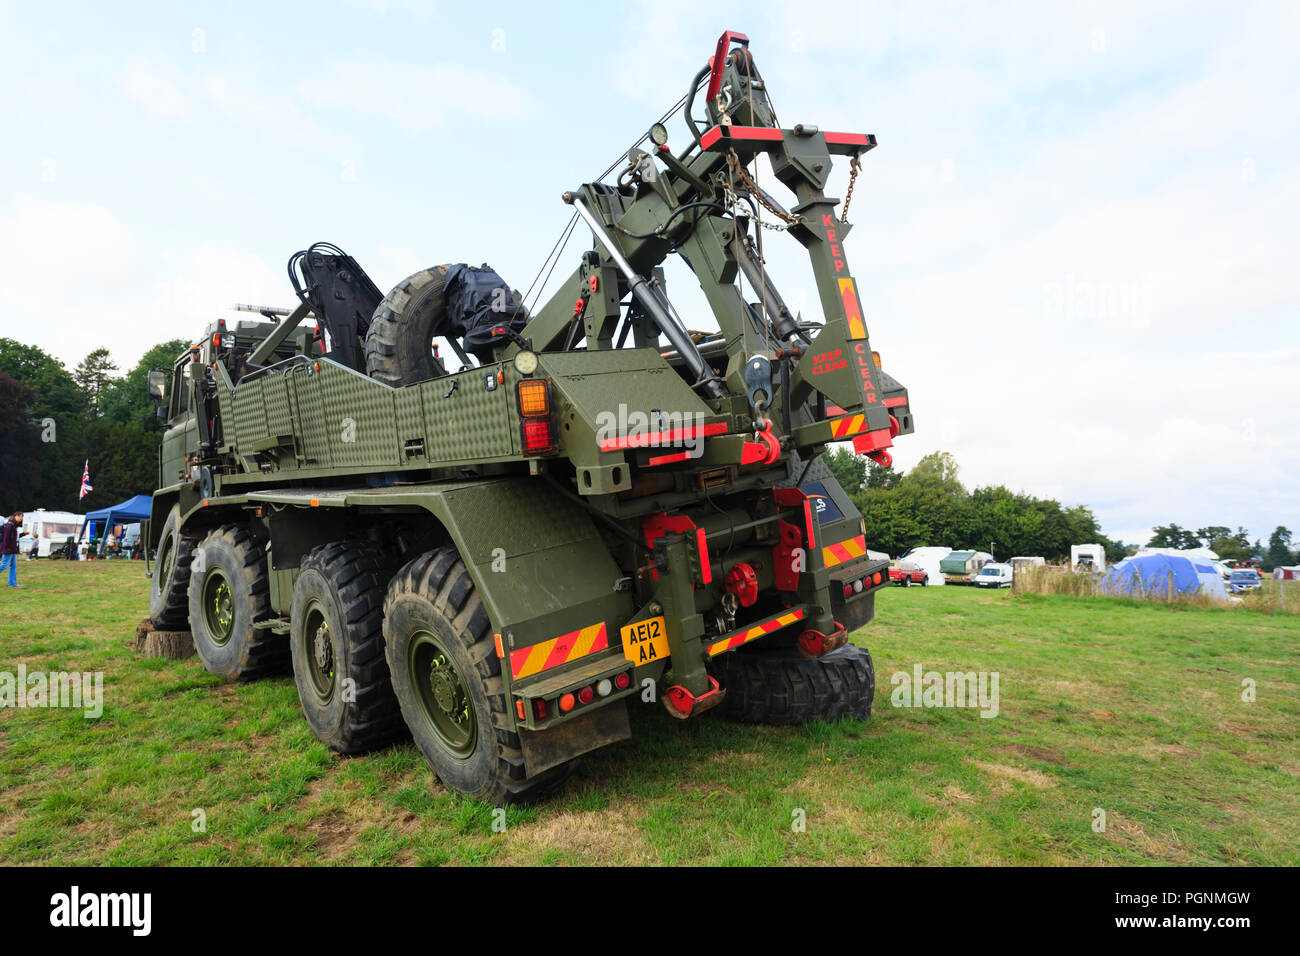 Ex British Army Foden DROP's vehicle with recovery mounted rack. - Stock Image